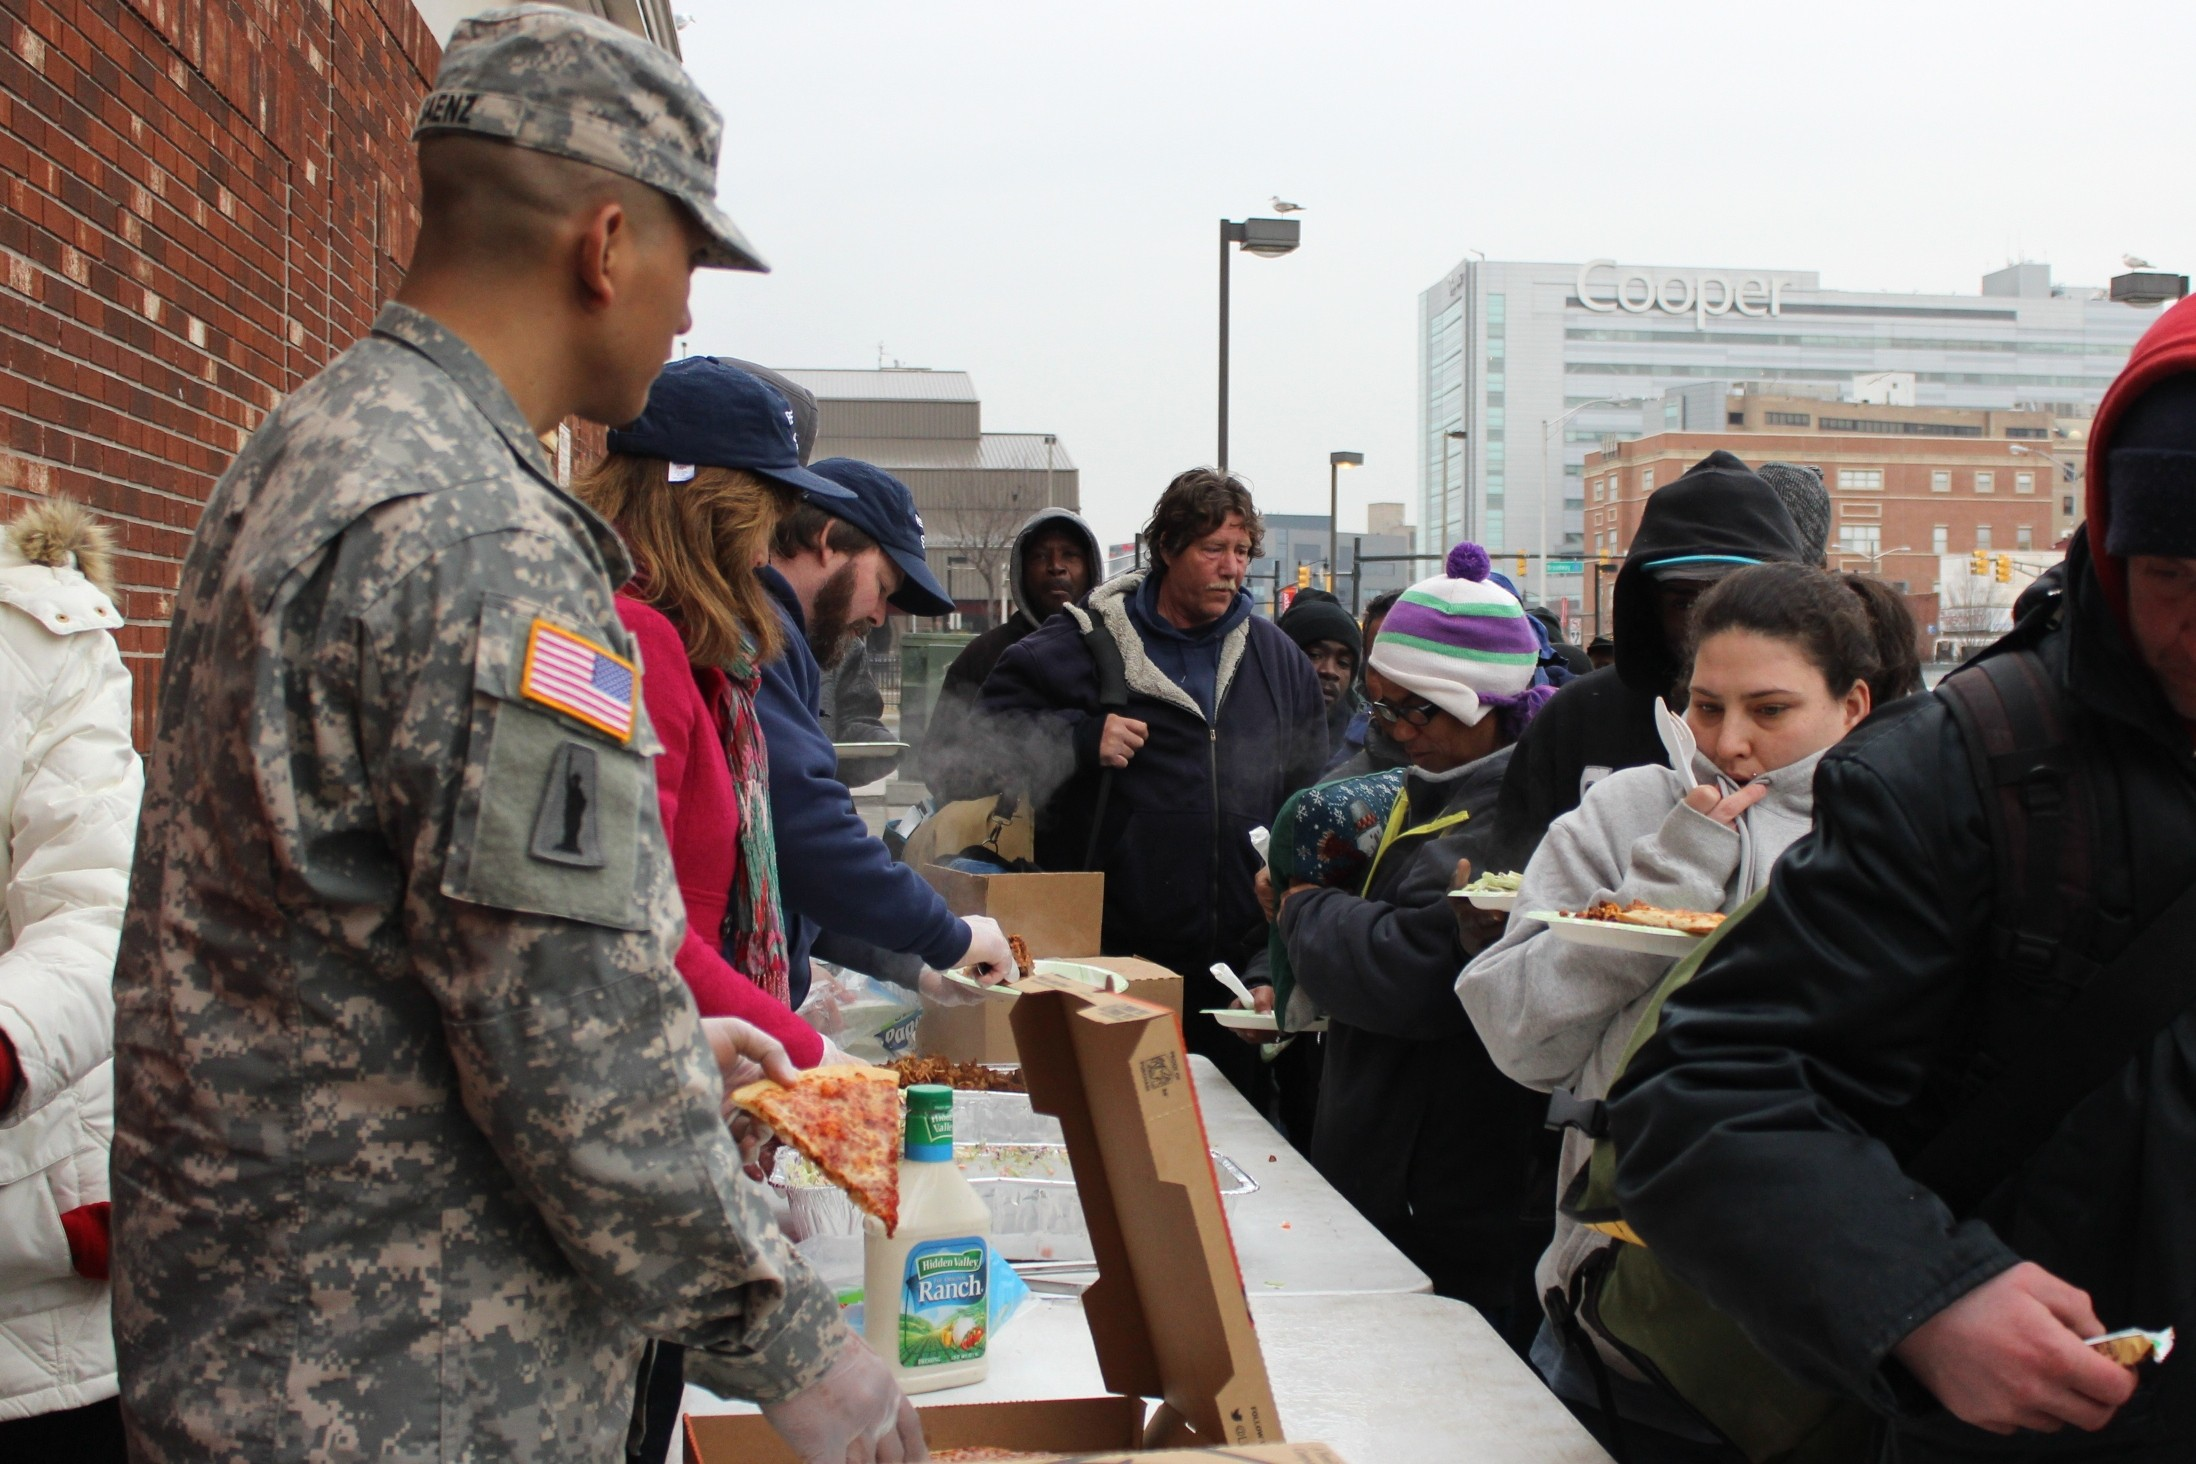 Amry Shelter For Homelss People : Soldier feeding helping homeless goes viral on social